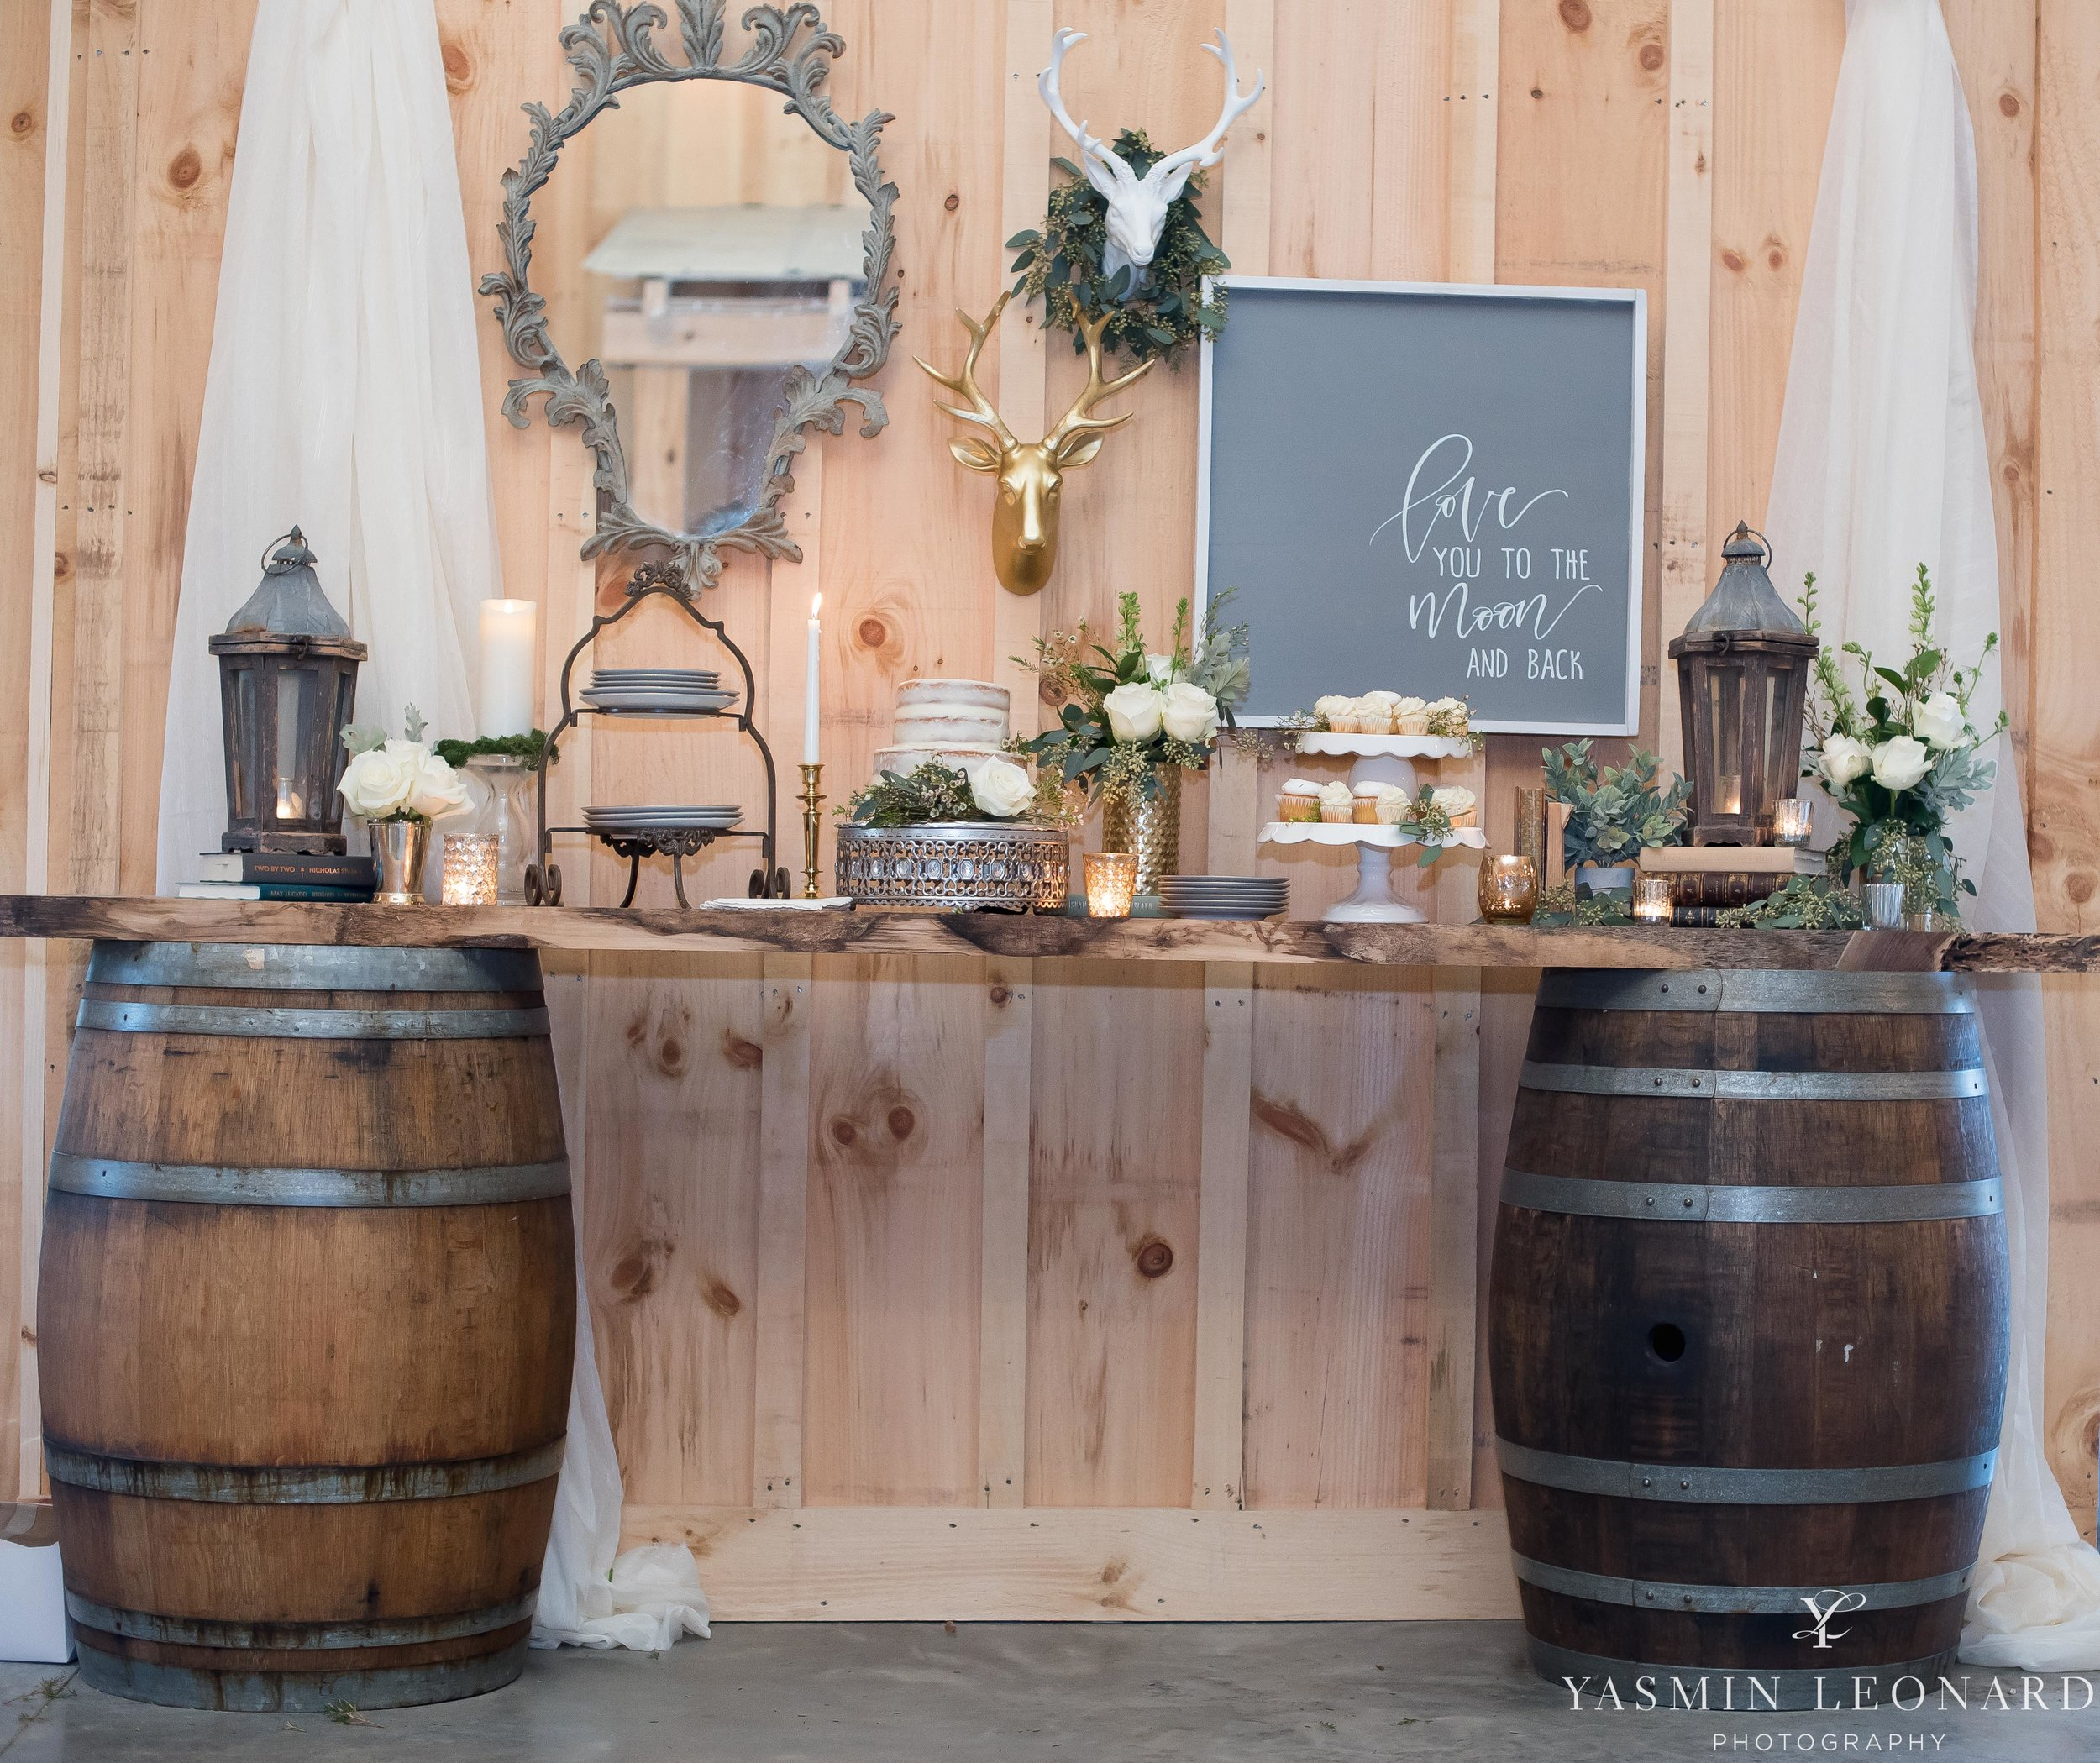 Old Homeplace Vineyard - Grits and Glitter - Dashing Dames Bridal Boutique - Just Priceless - Yasmin Leonard Photography - High Point Weddings - NC Weddings - NC Wedding Venues - High Point Jewelers - NC Wines - NC Vineyards - Cupcake Cuties-63.jpg